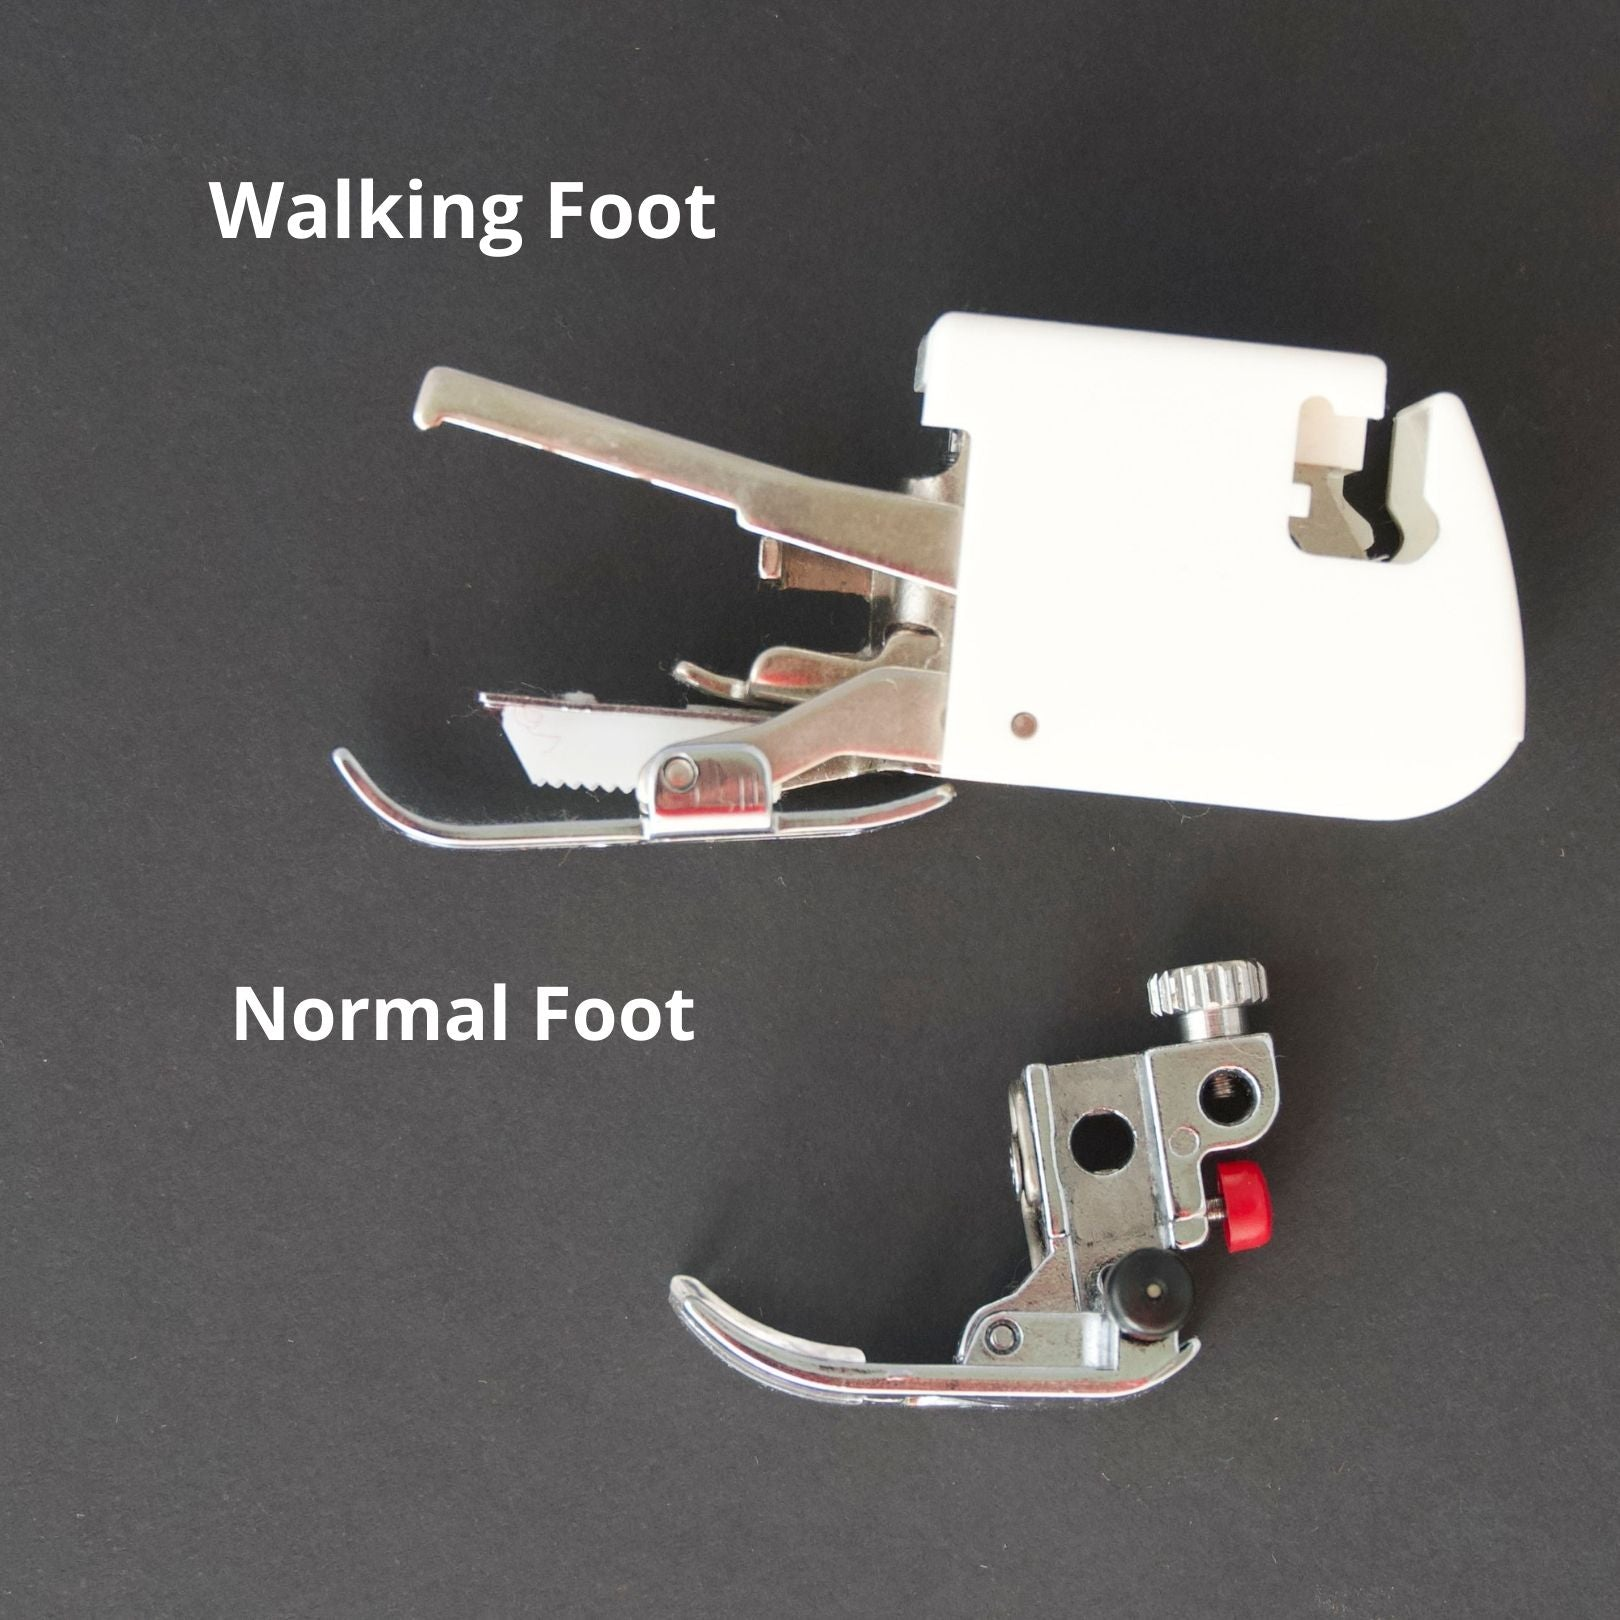 a side by side image of a regular walking foot next to a walking foot. the walking foot has a lever at the front and a rectangle box that you attach to the sewing machine shaft